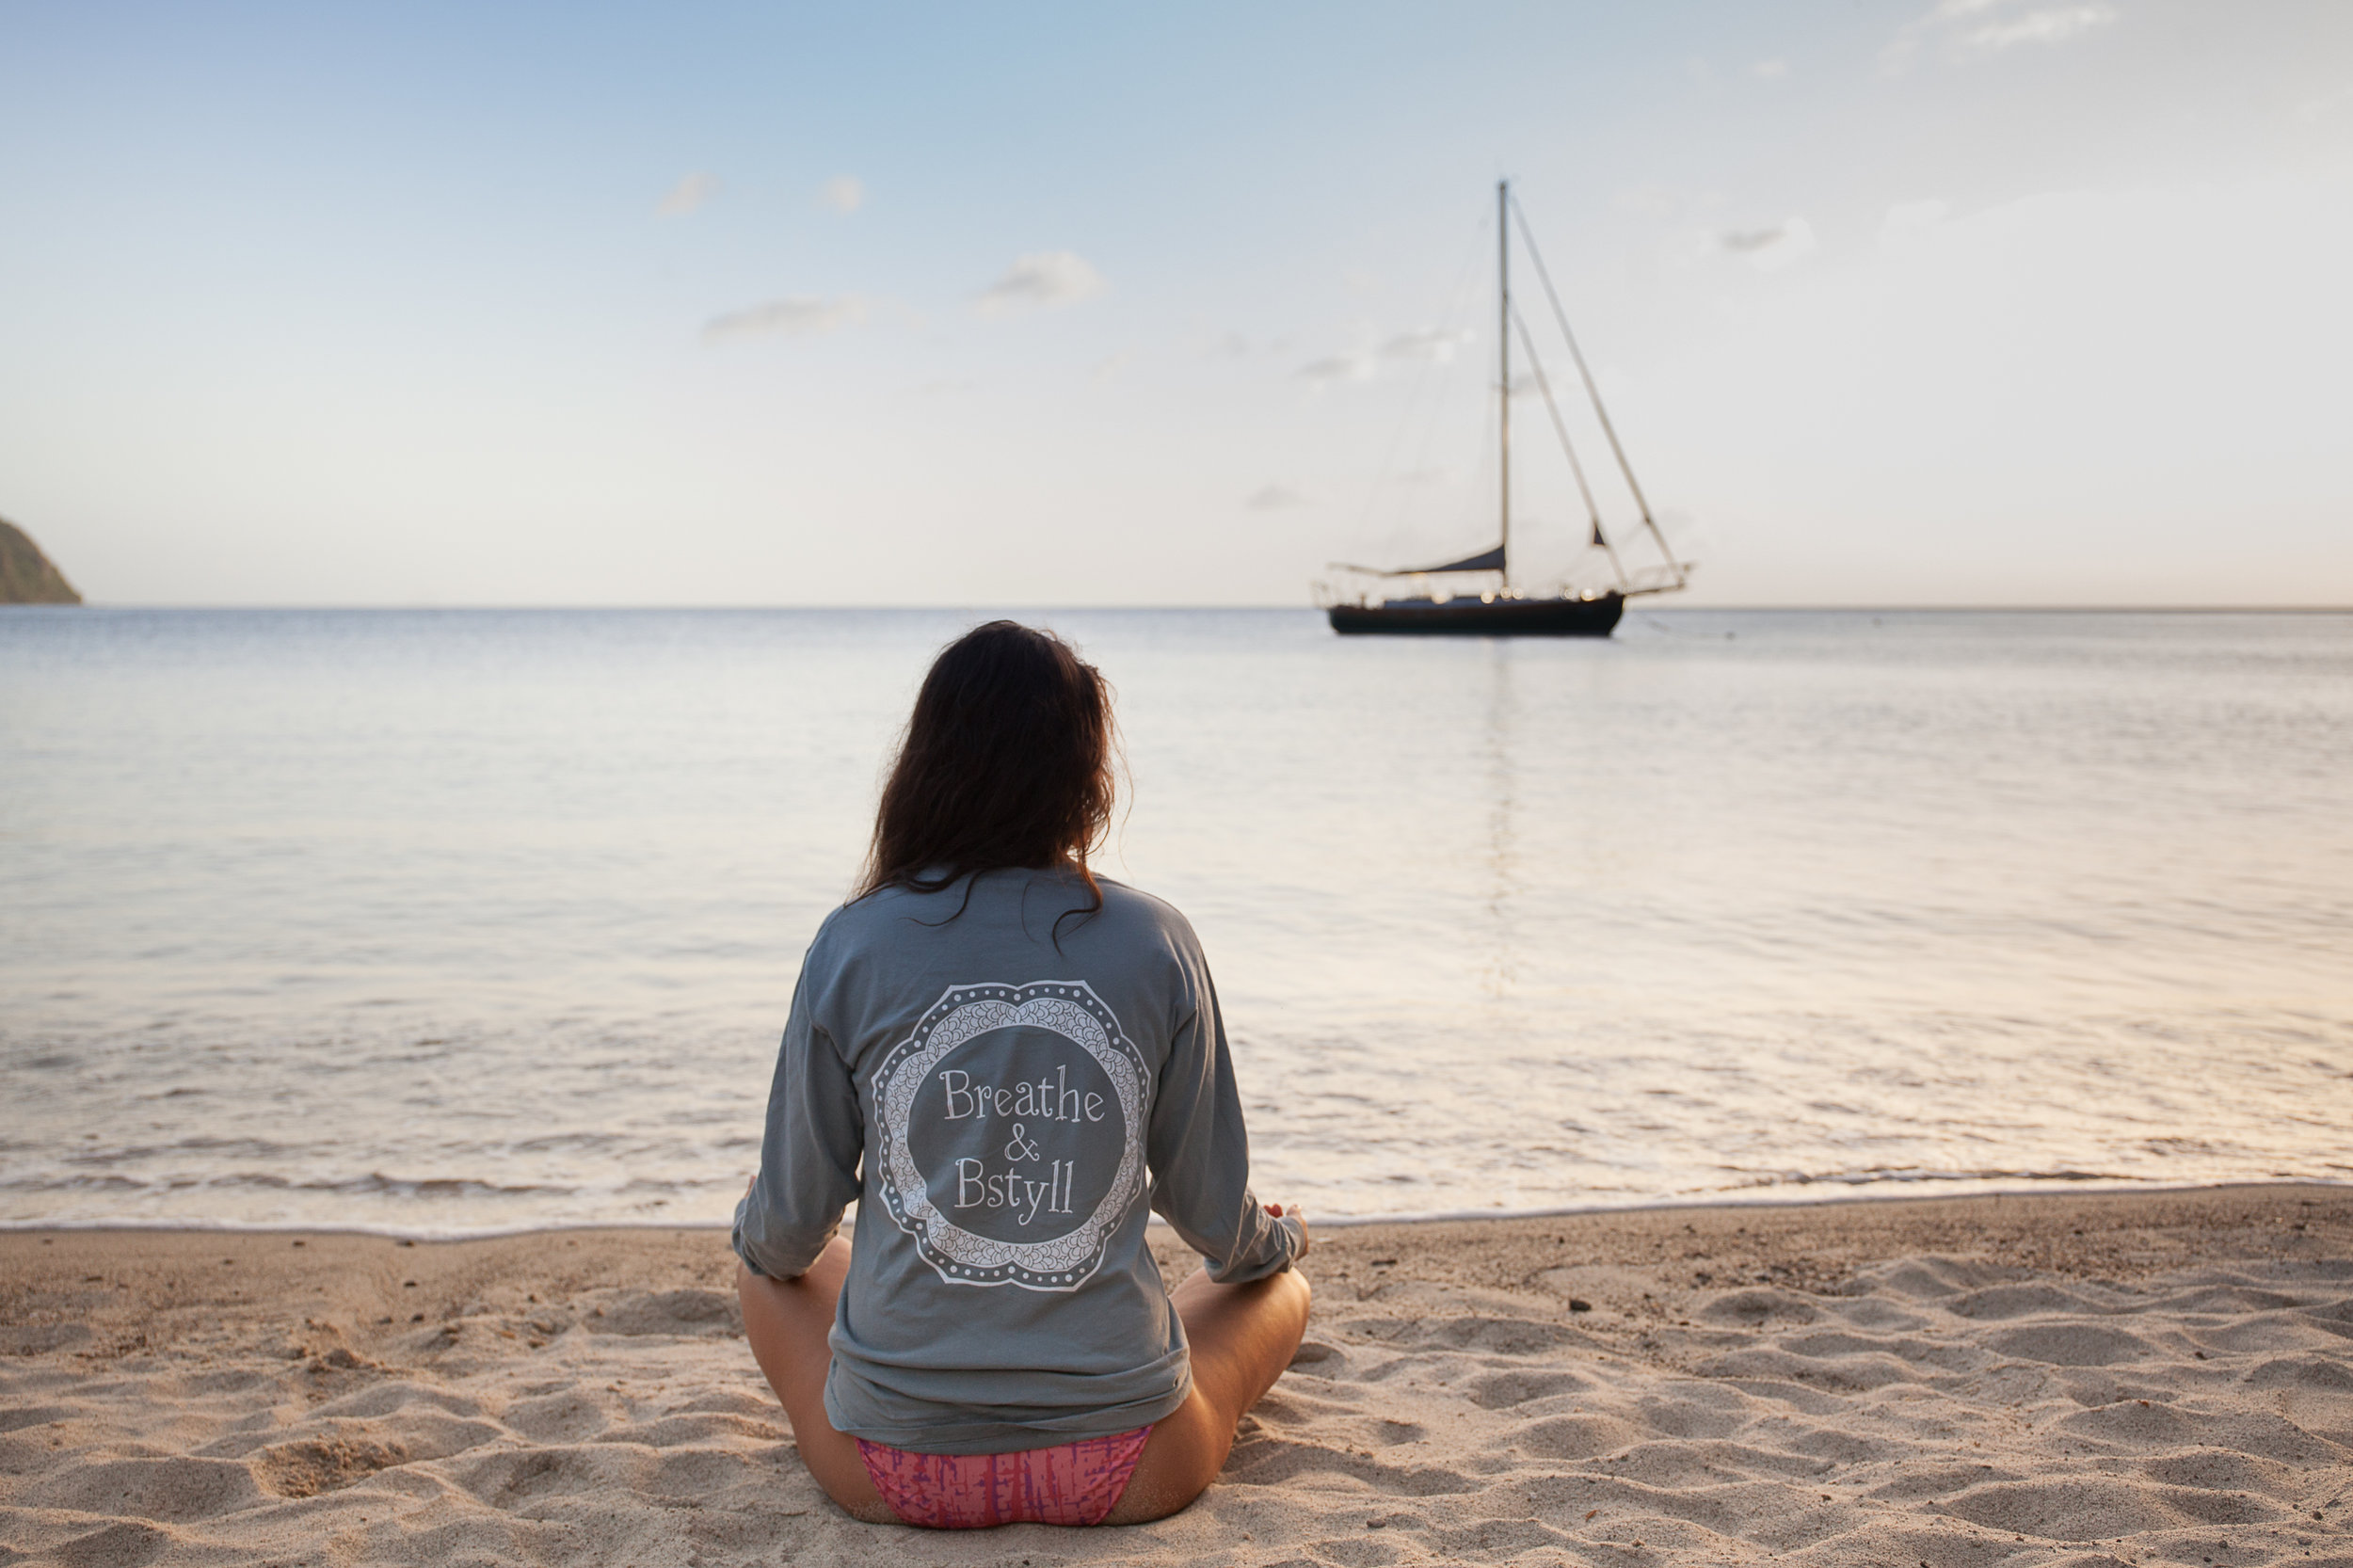 Product photography / photographer of Breathe & Bstyll shirt in St. Lucia by Vision Balm based in Charleston, SC